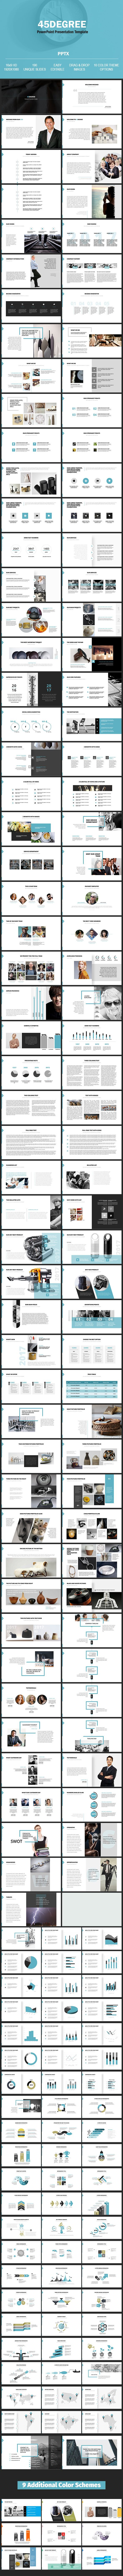 45DEGREE - Multipurpose PowerPoint Presentation Template